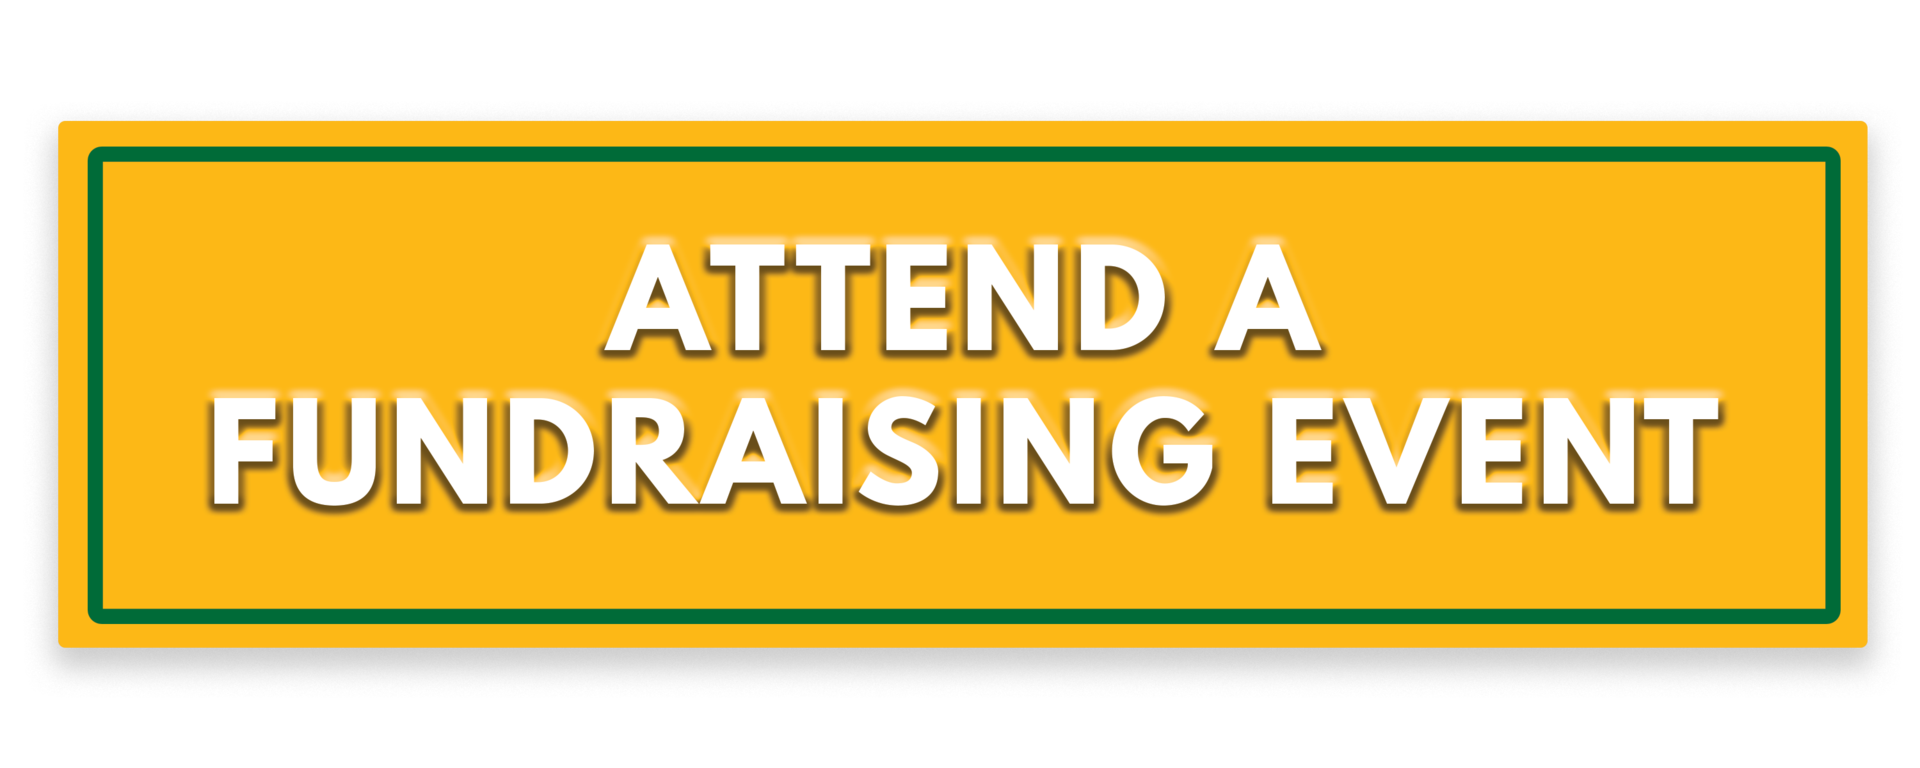 Attend a Fundraising Event